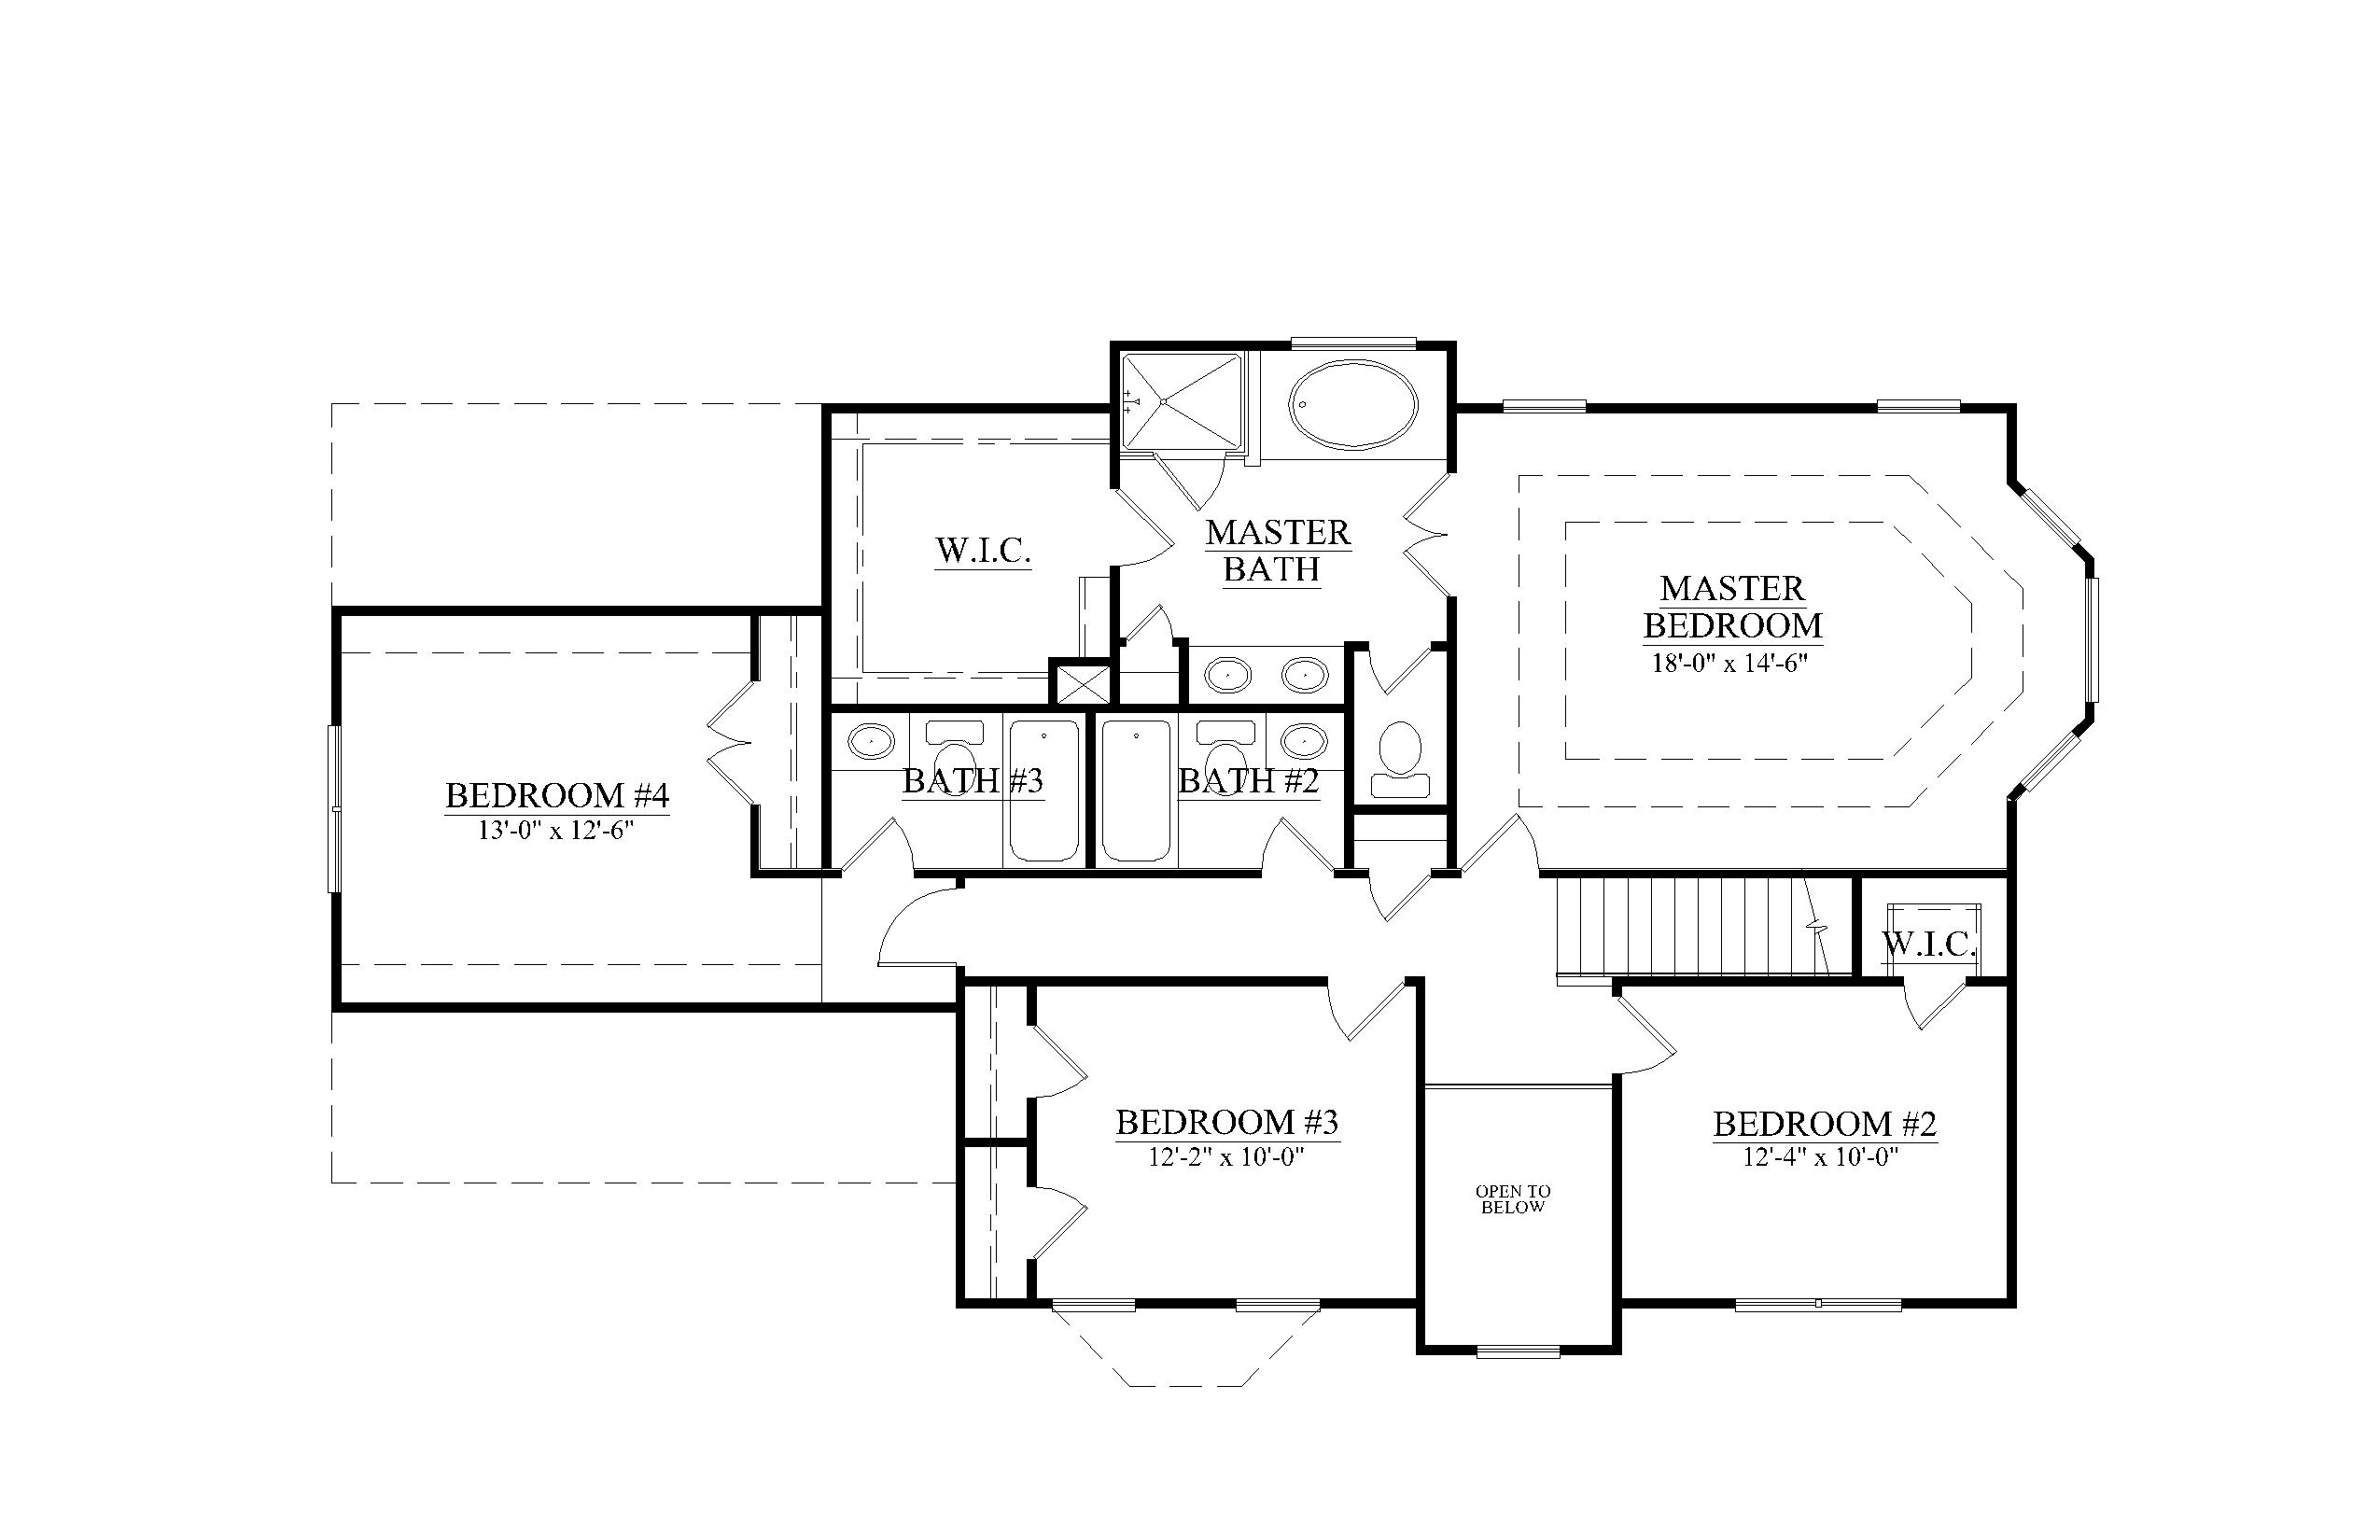 House Plans 4500 5500 Sq Ft